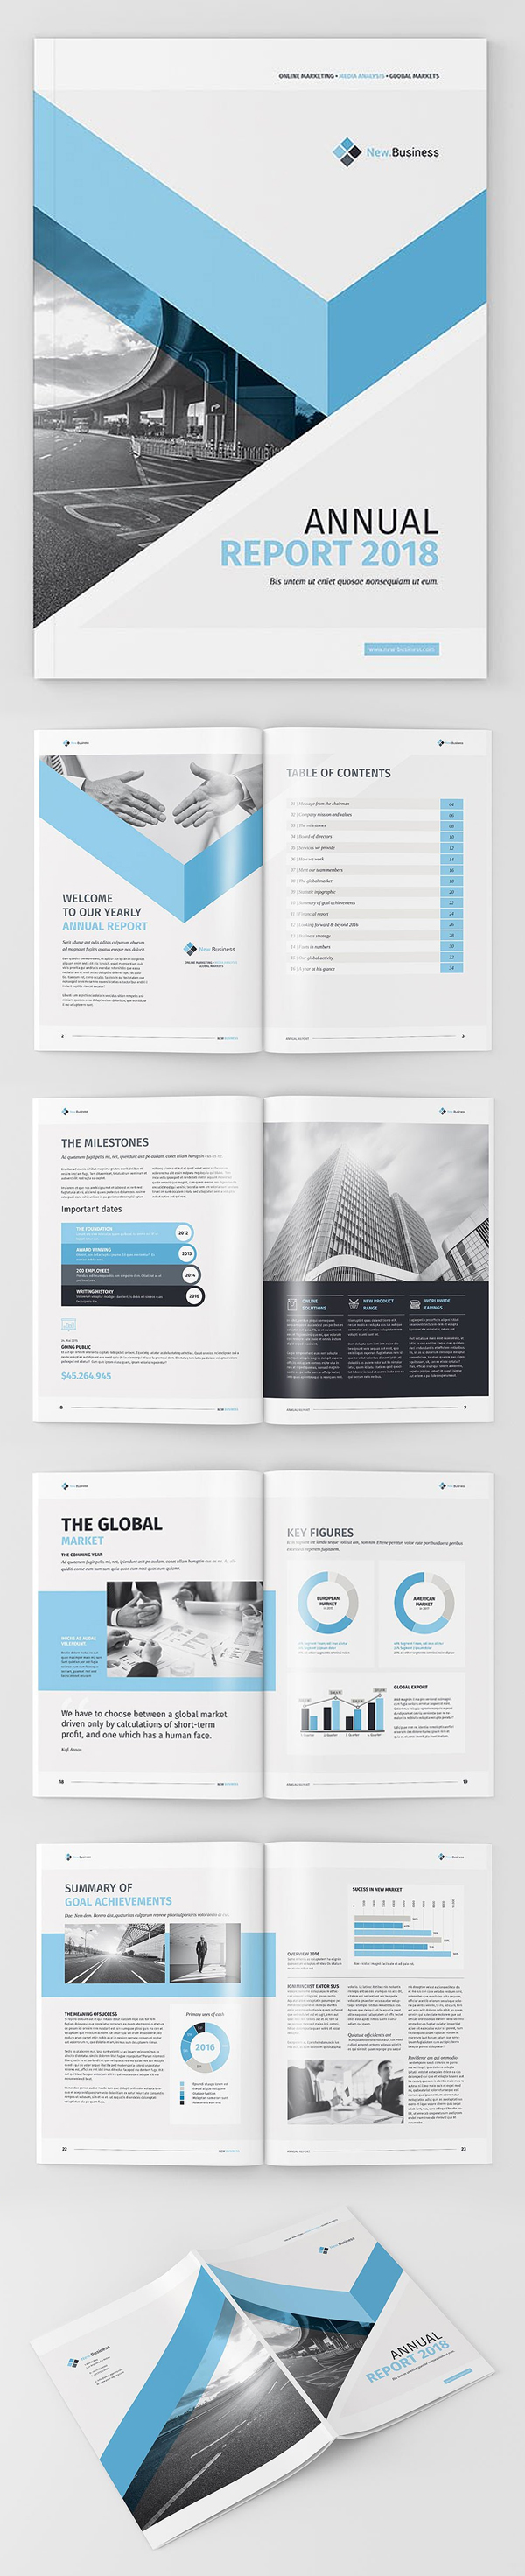 Professional Annual Report 2018 Template